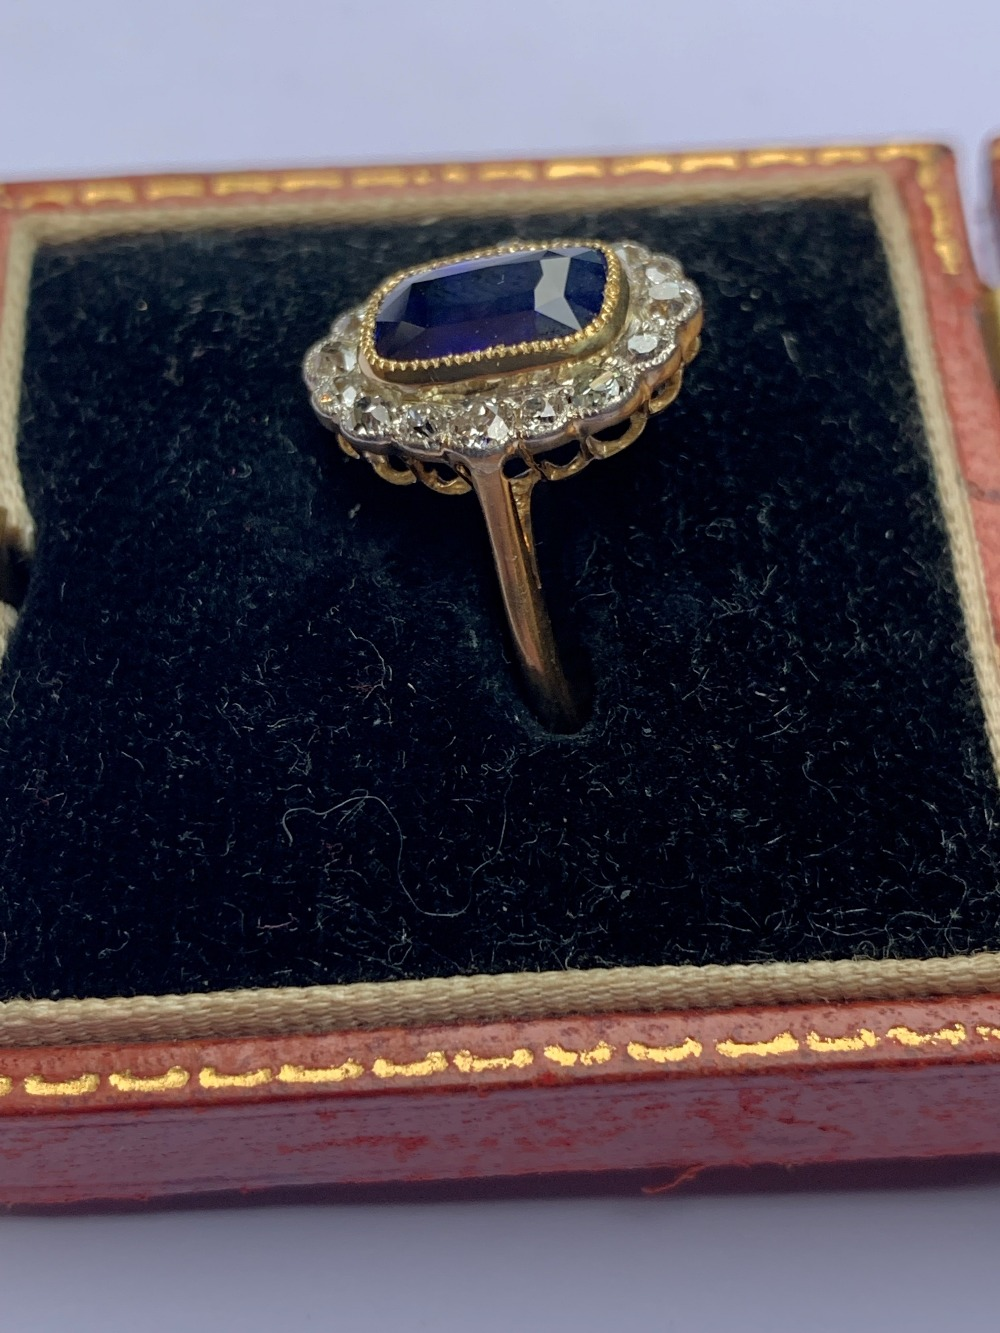 A certified natural 3.03 carat Sri-Lankan sapphire & diamond oval cluster ring in 18ct yellow - Image 2 of 5